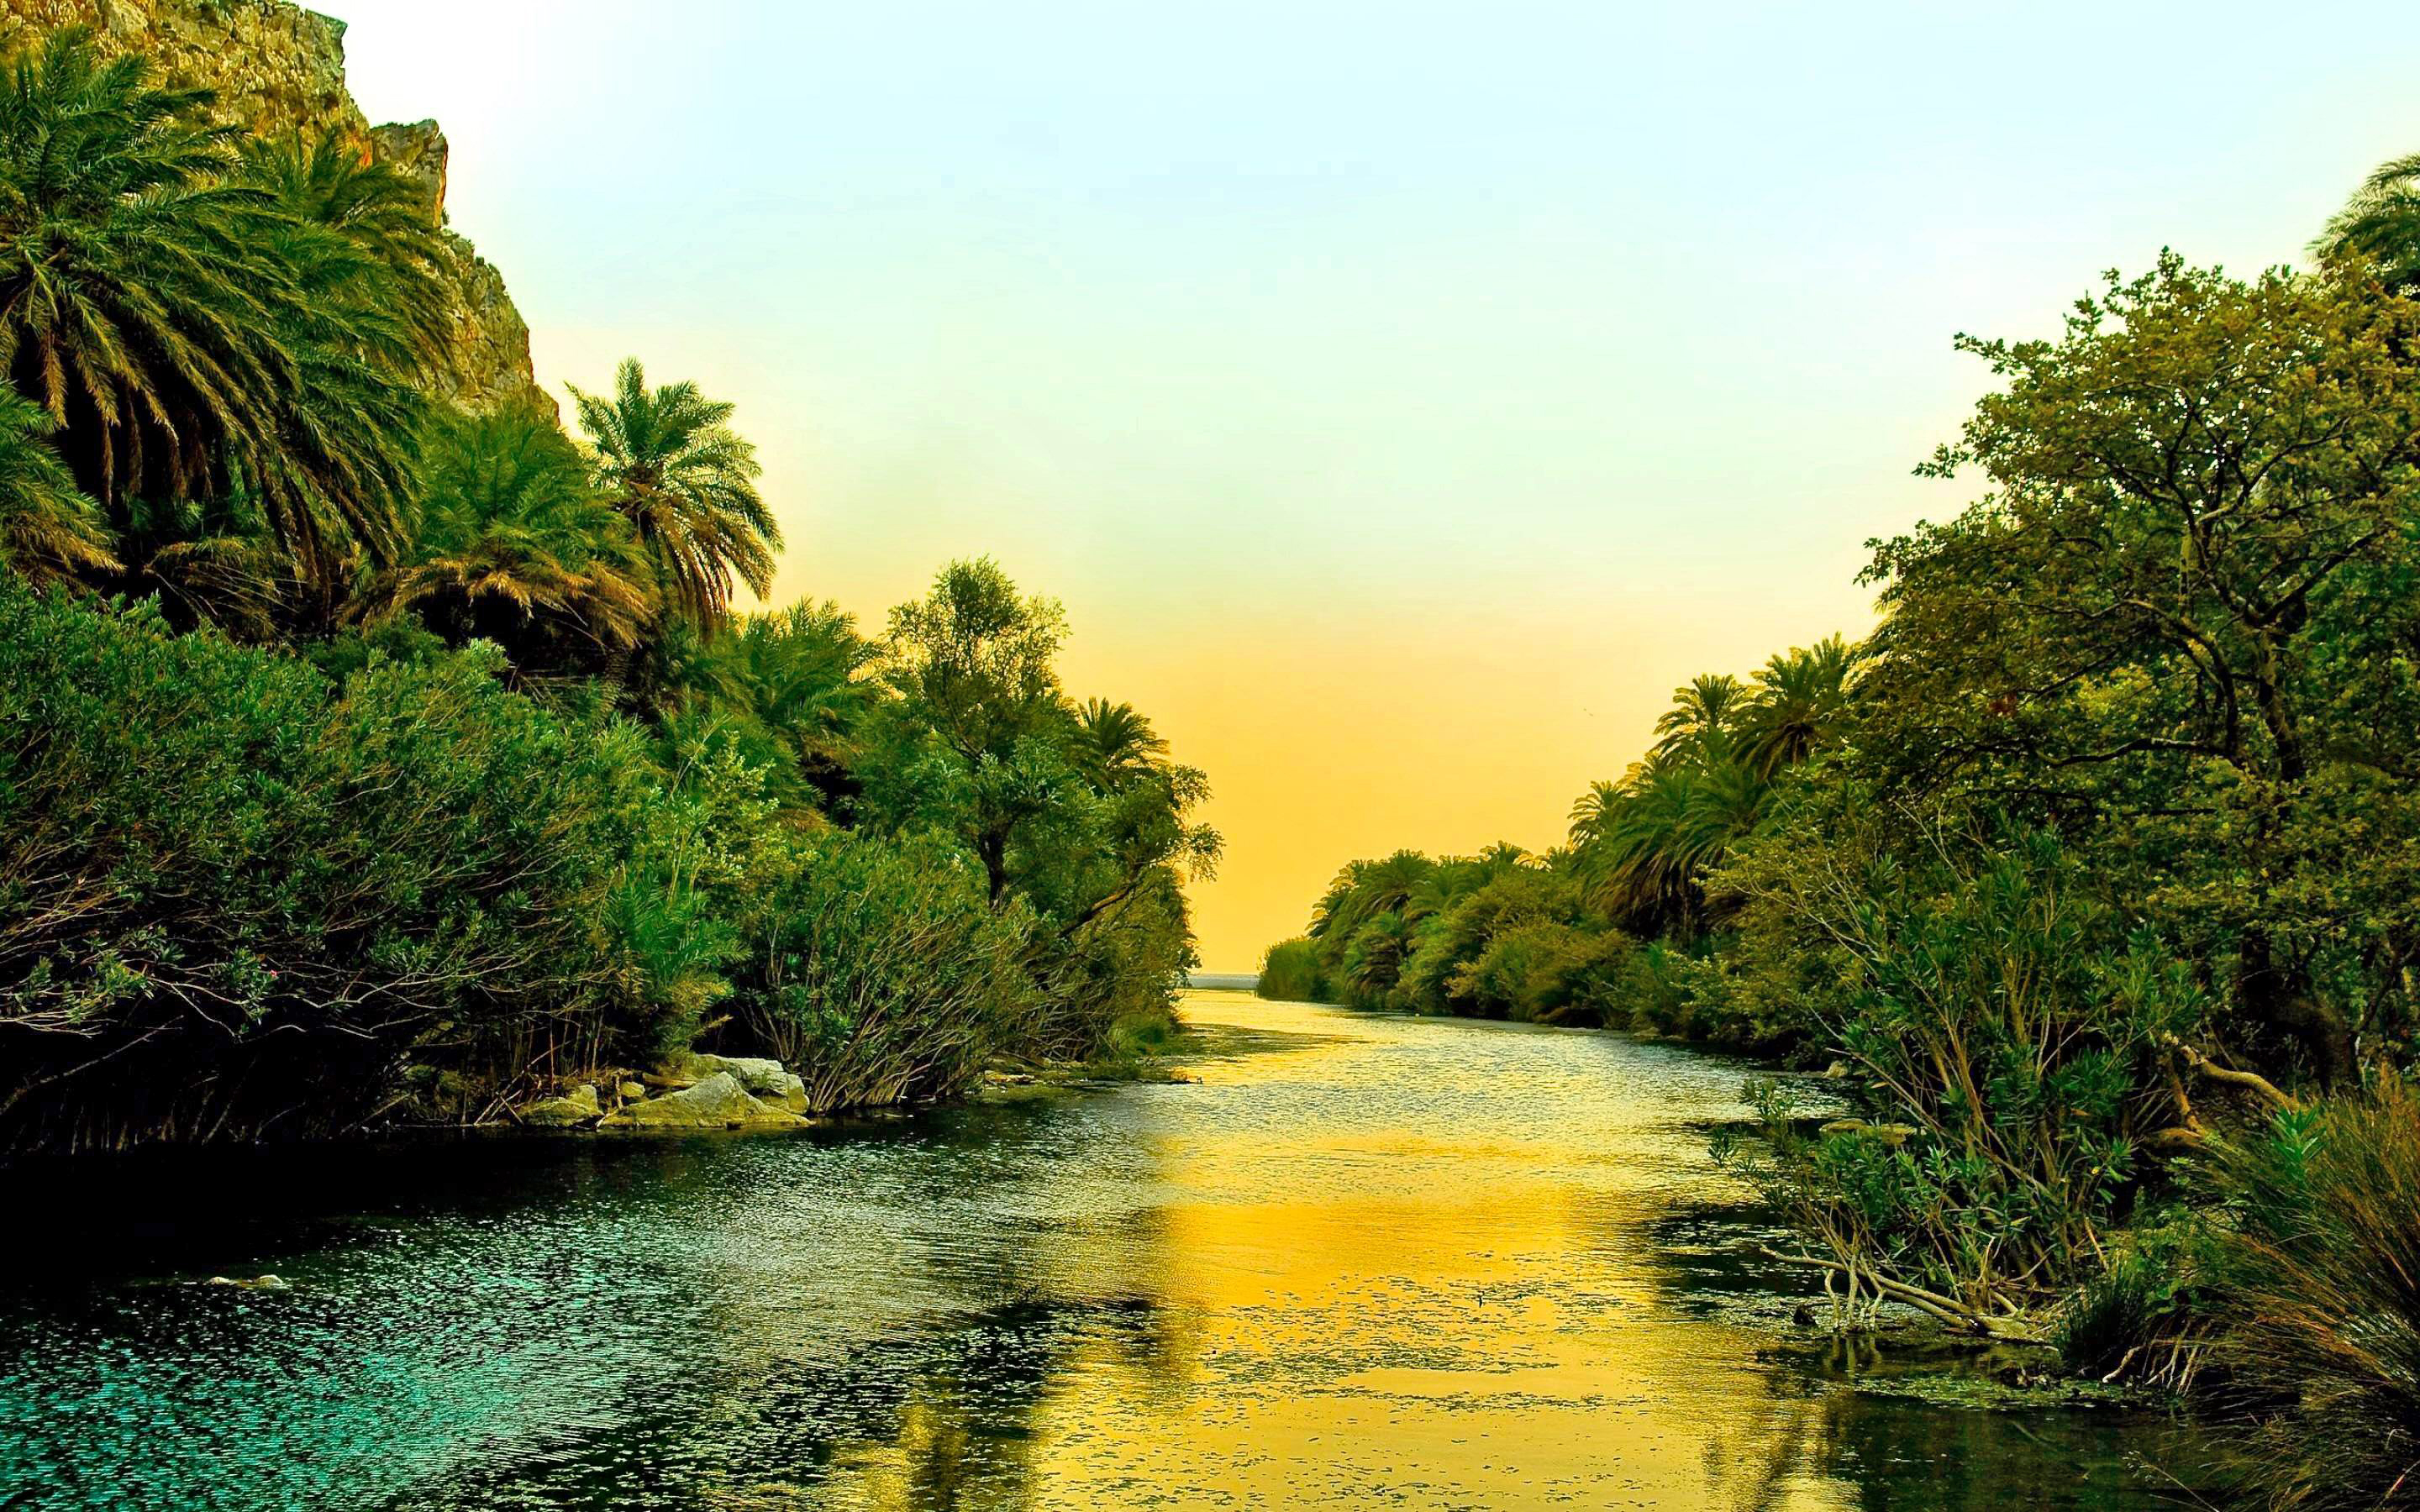 Palm Trees By River - HD Wallpaper